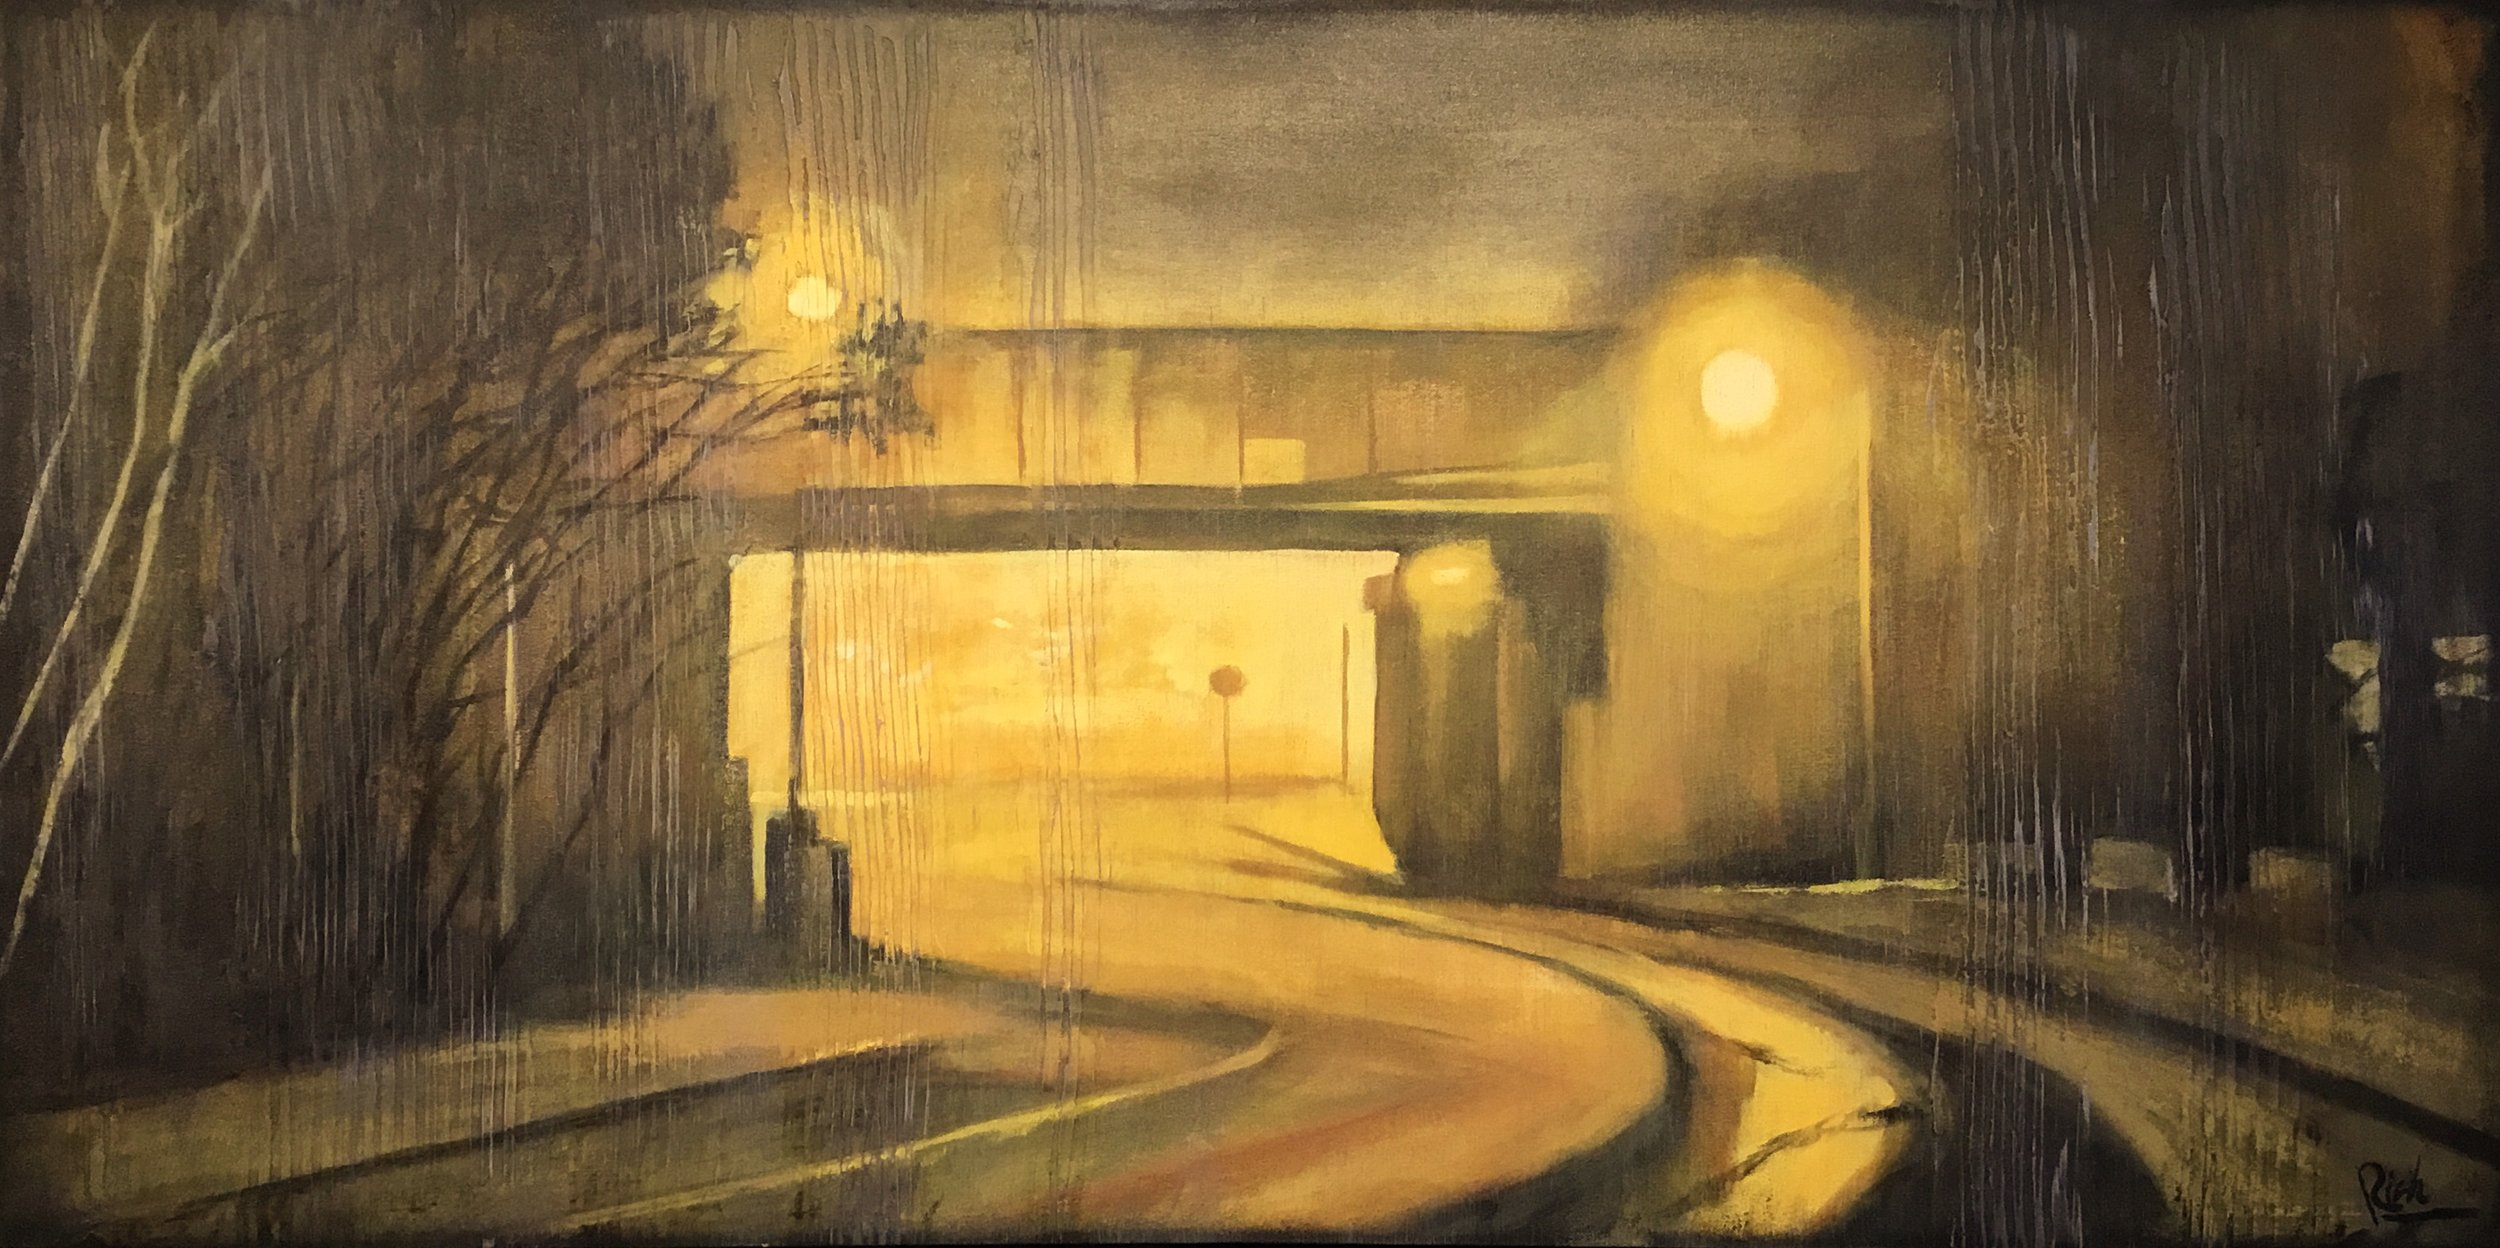 Misty underpass  Acrylic on canvas 48x24